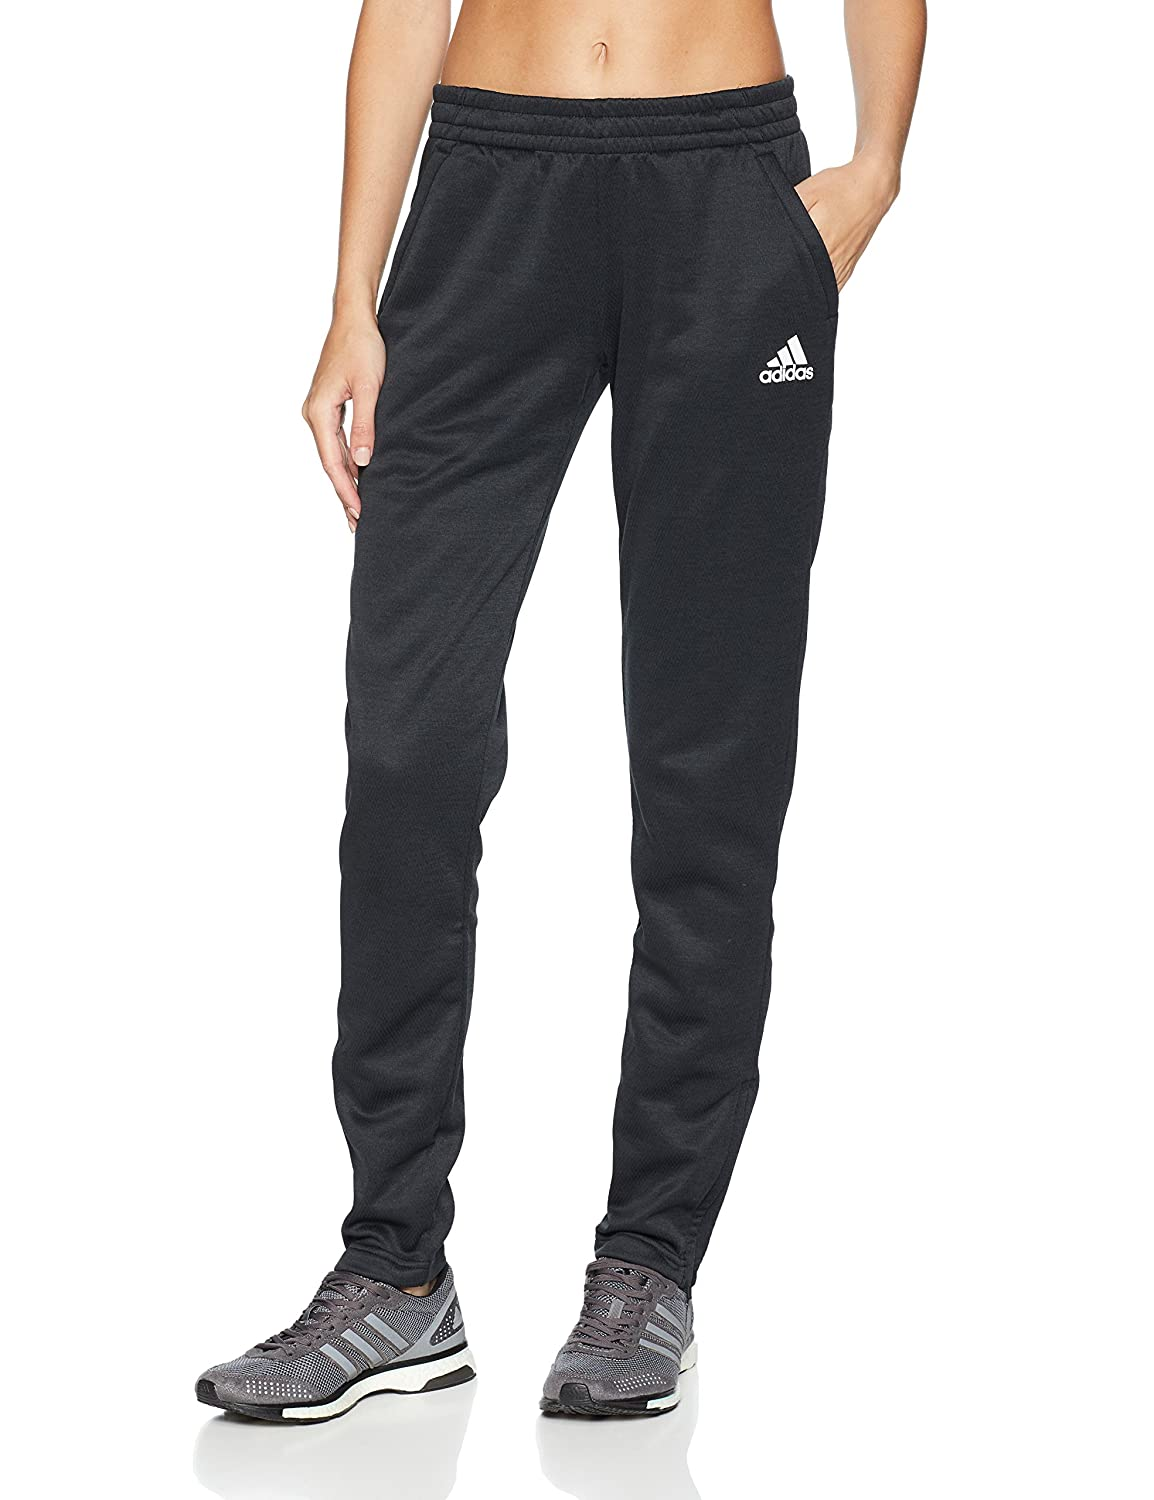 adidas Women's Athletics Team Issue Tapered Pant